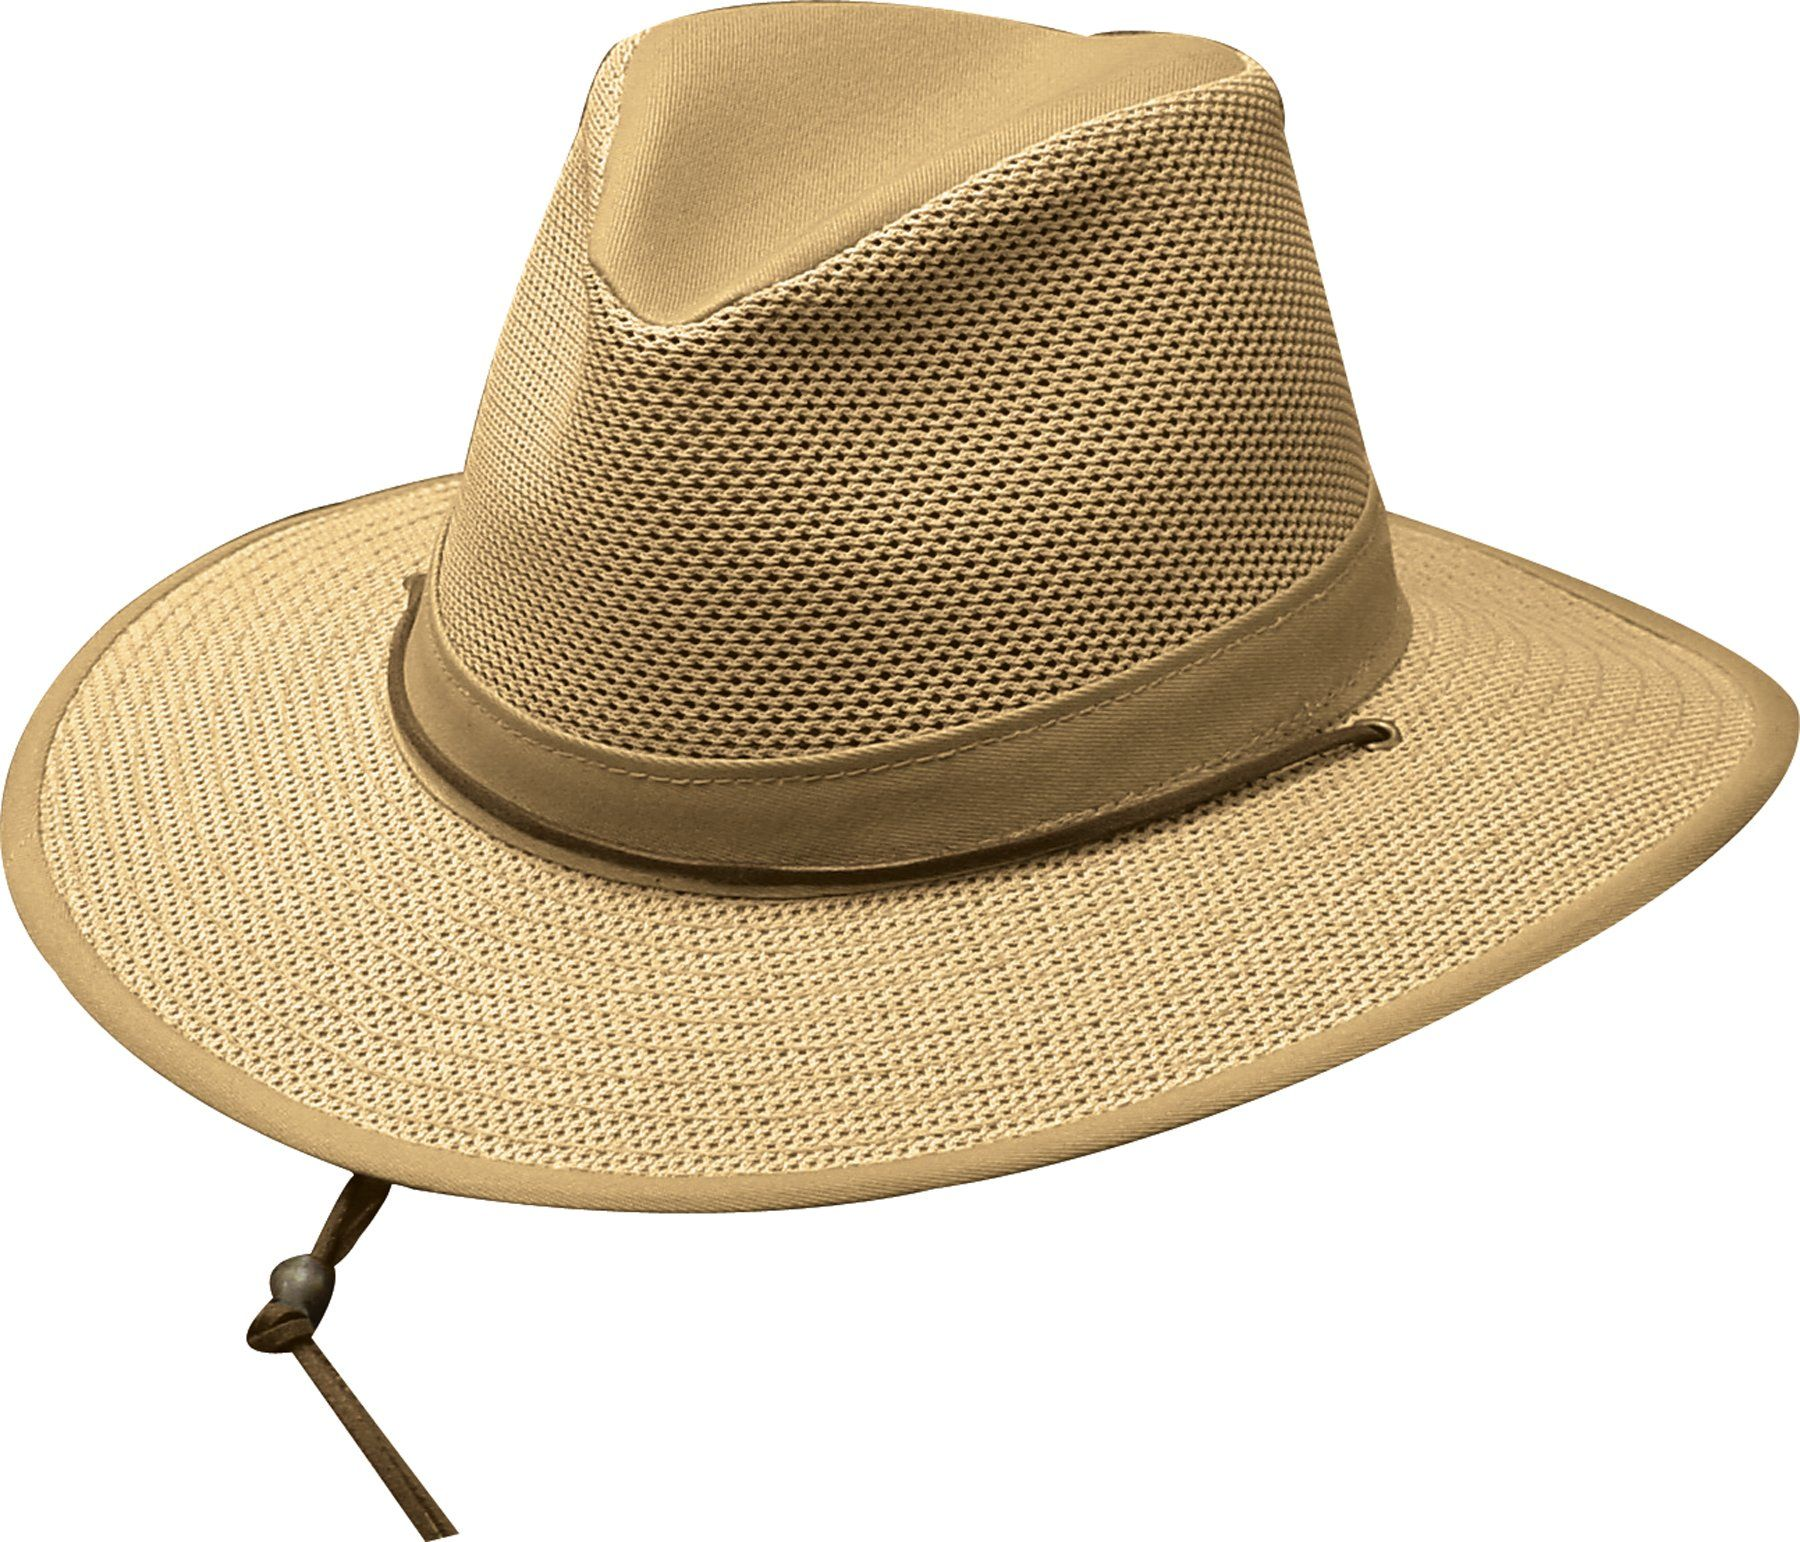 9f43857e851776 This safari hat is the ultimate hat for the great outdoors! It's  constructed of lightweight